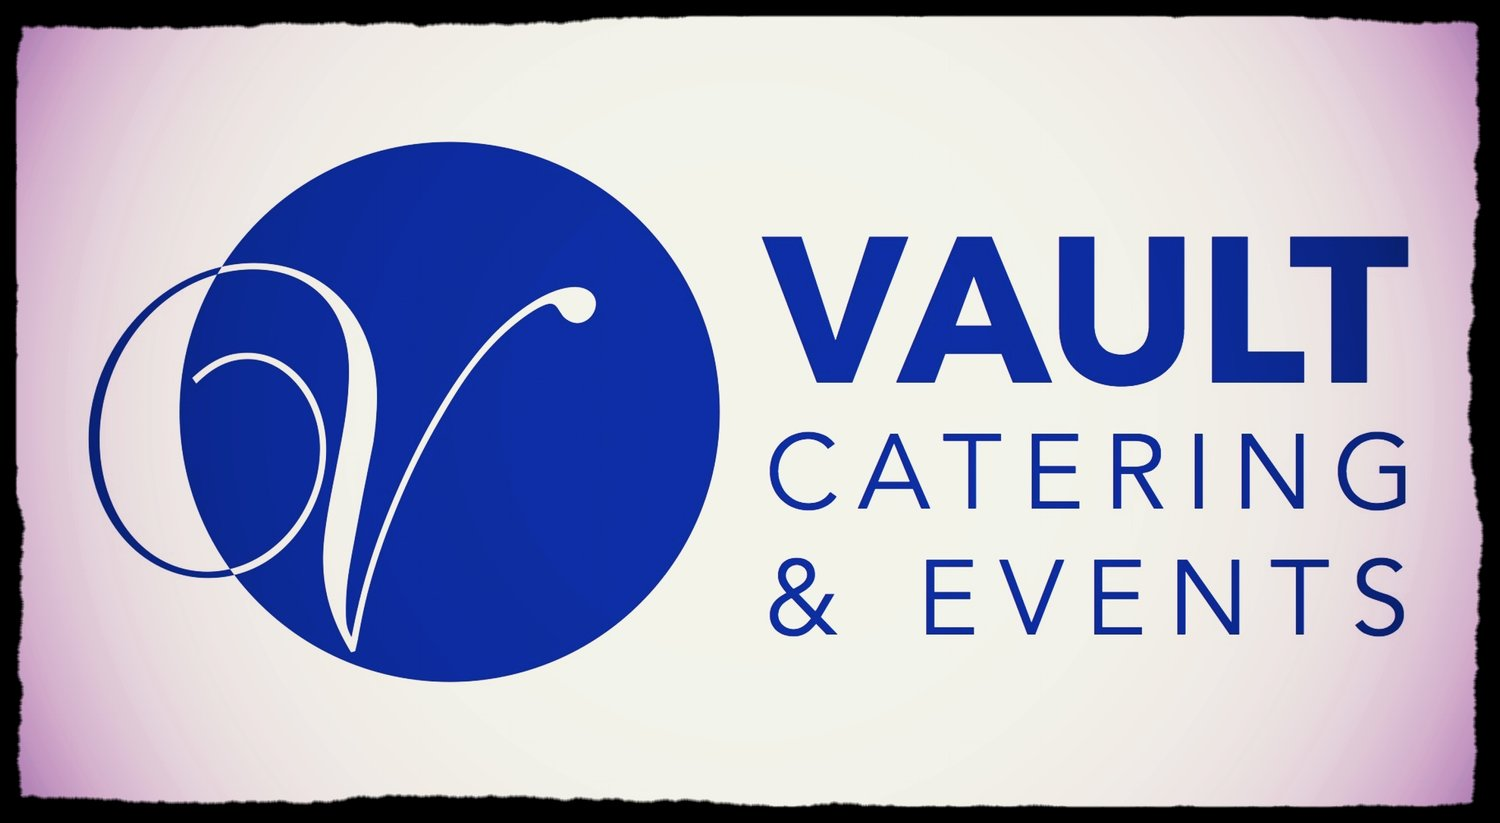 Vault Catering & Events